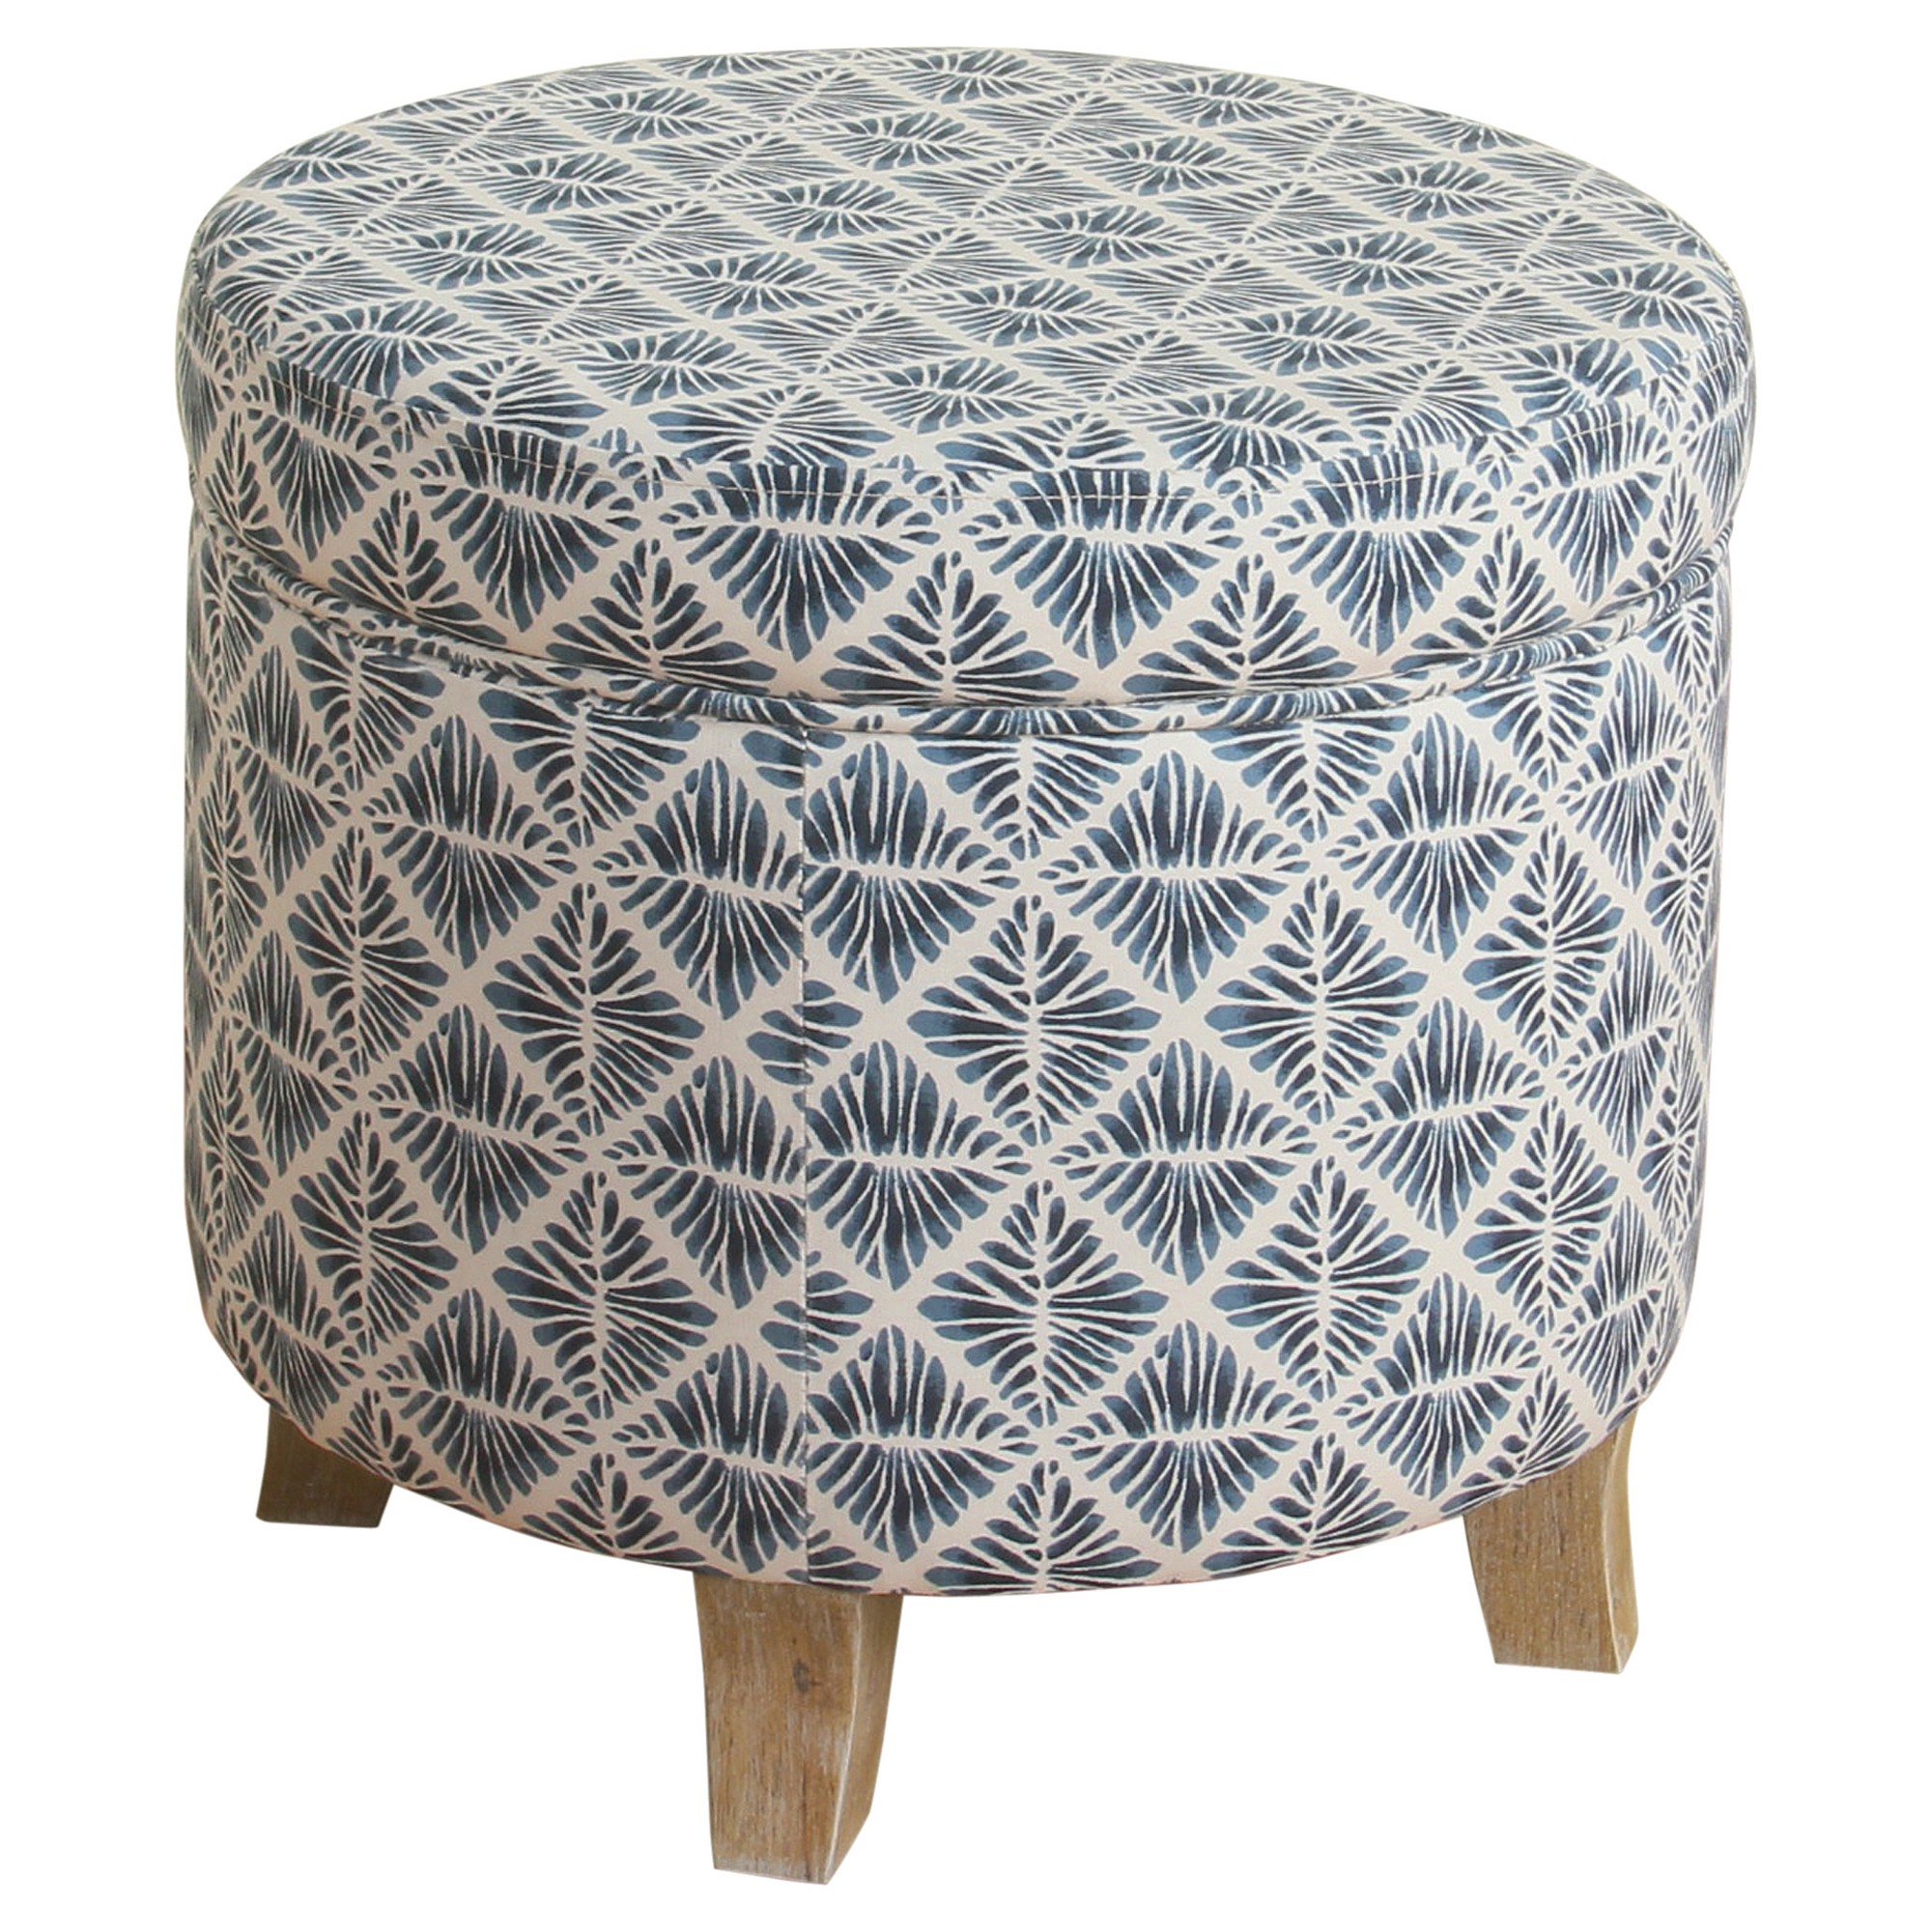 Remarkable Cole Classics Round Storage Ottoman Flared Wood Leg Blue Unemploymentrelief Wooden Chair Designs For Living Room Unemploymentrelieforg